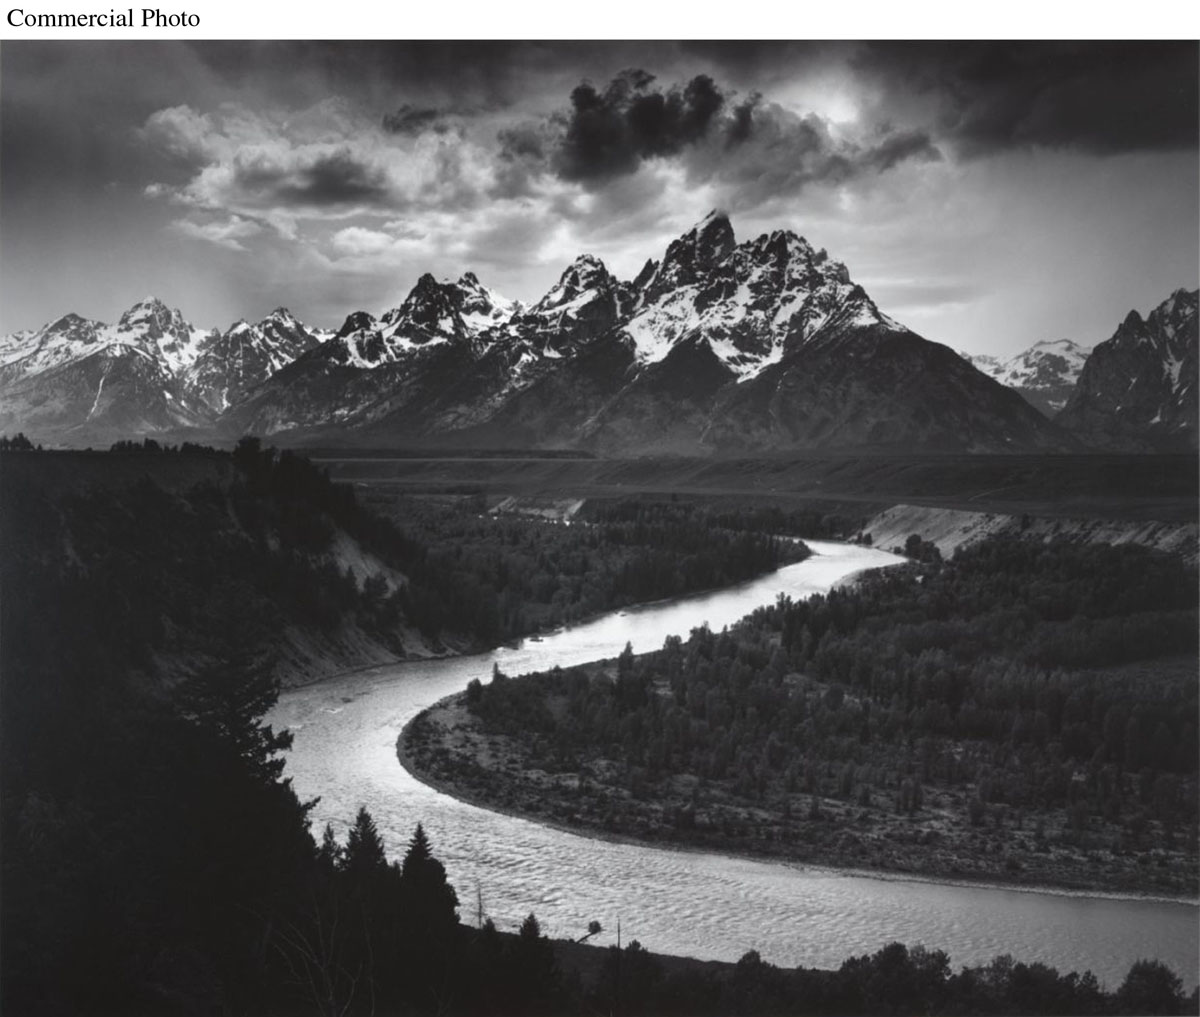 ansel adams a legend is born When i picture ansel adams, i think of a truly independent photographer   phillips was born in 1952 and received his first camera when he.